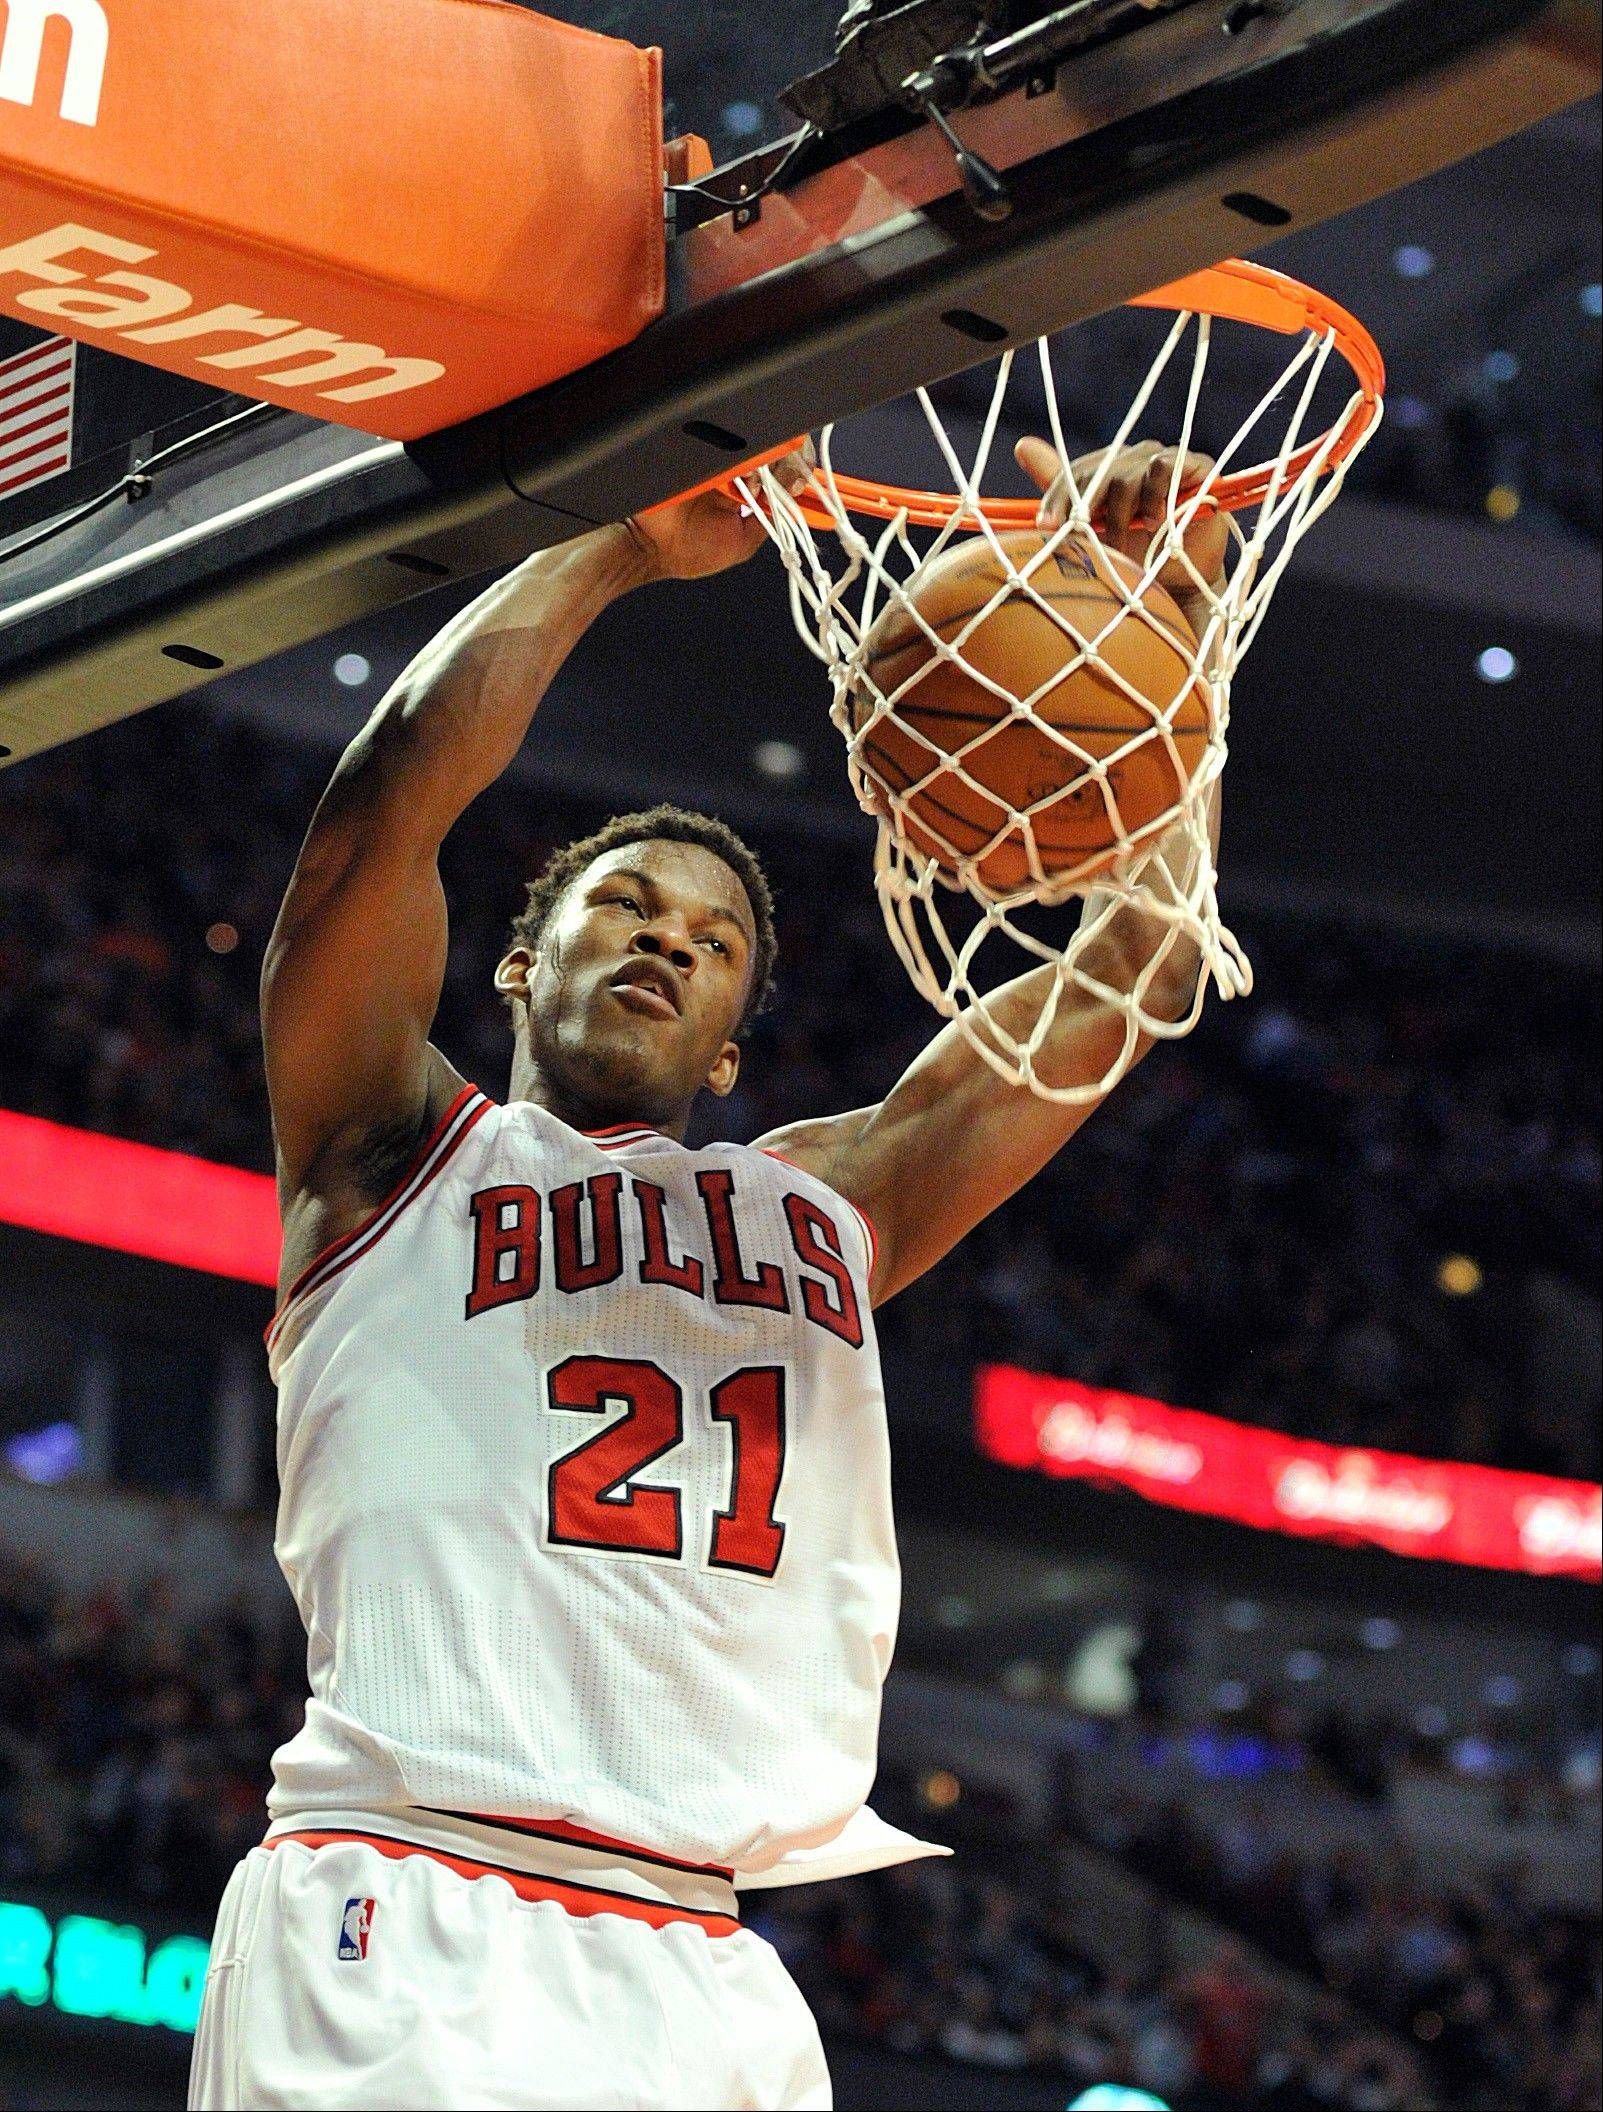 Chicago Bulls' Jimmy Butler (21) dunks the ball against the New York Knicks during the second half of an NBA basketball game, Thursday, April 11, 2013, in Chicago. The Bulls won 118-111 in overtime. (AP Photo/Jim Prisching)